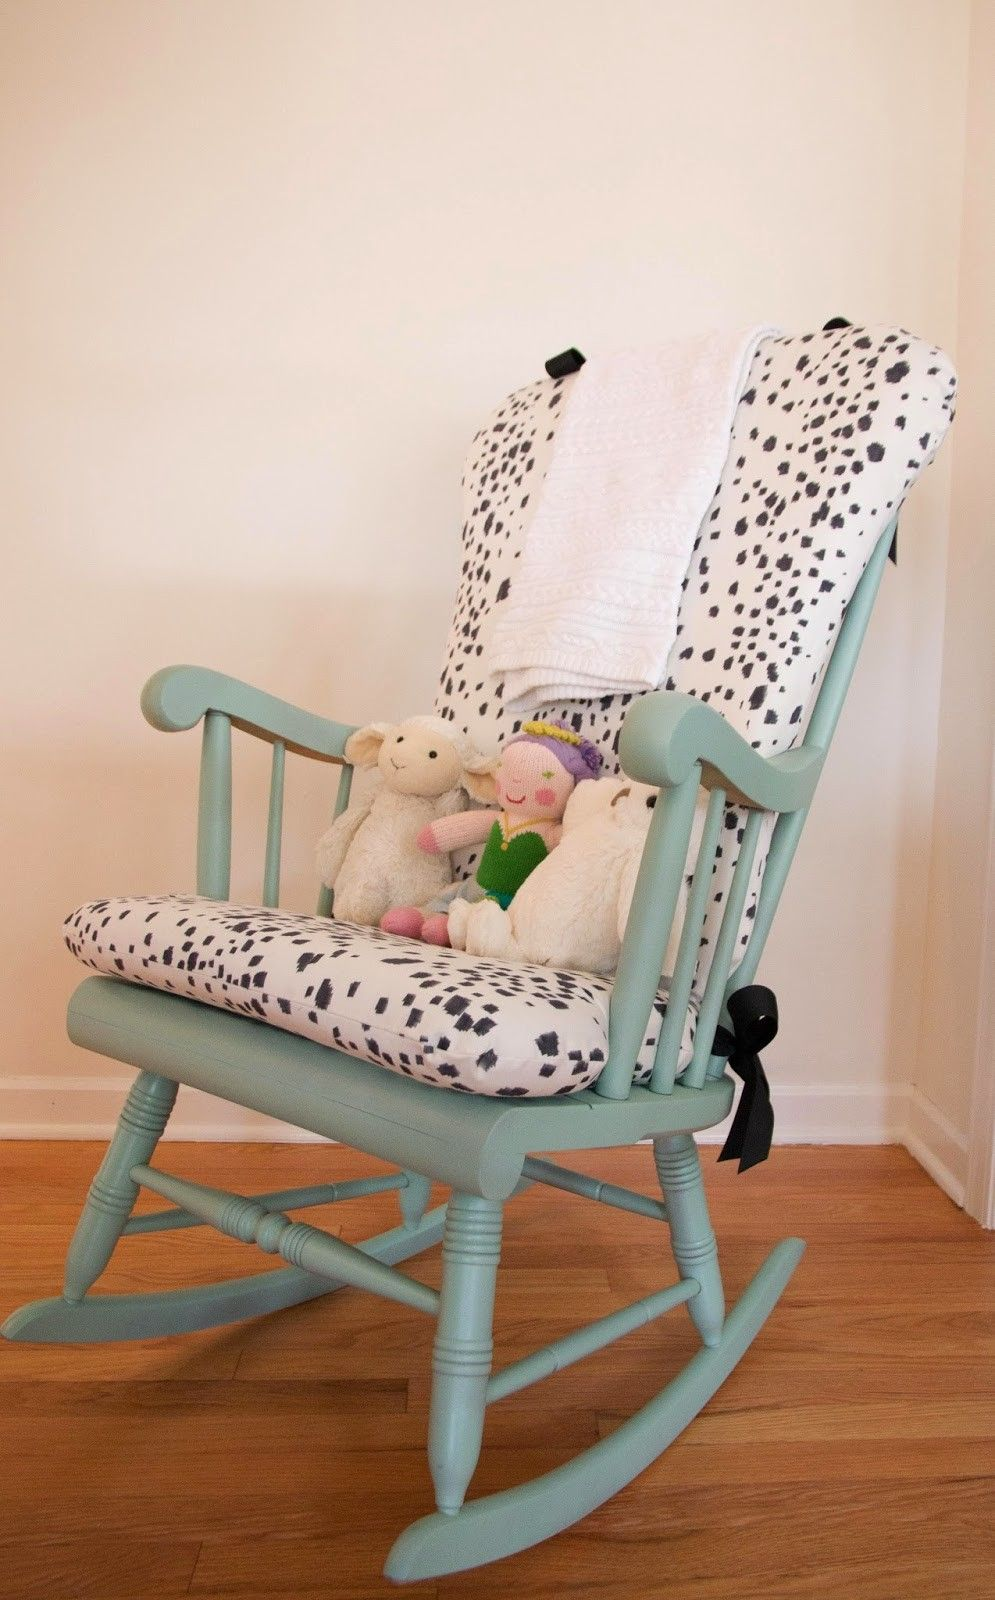 Awesome DIY Les Touches Upholstered Rocking Chair. A Custom Upholstered Rocker For  $100 That Looks Just Like Brunschwig U0026 Filsu0027. A Complete Step By Step  Tutorial.